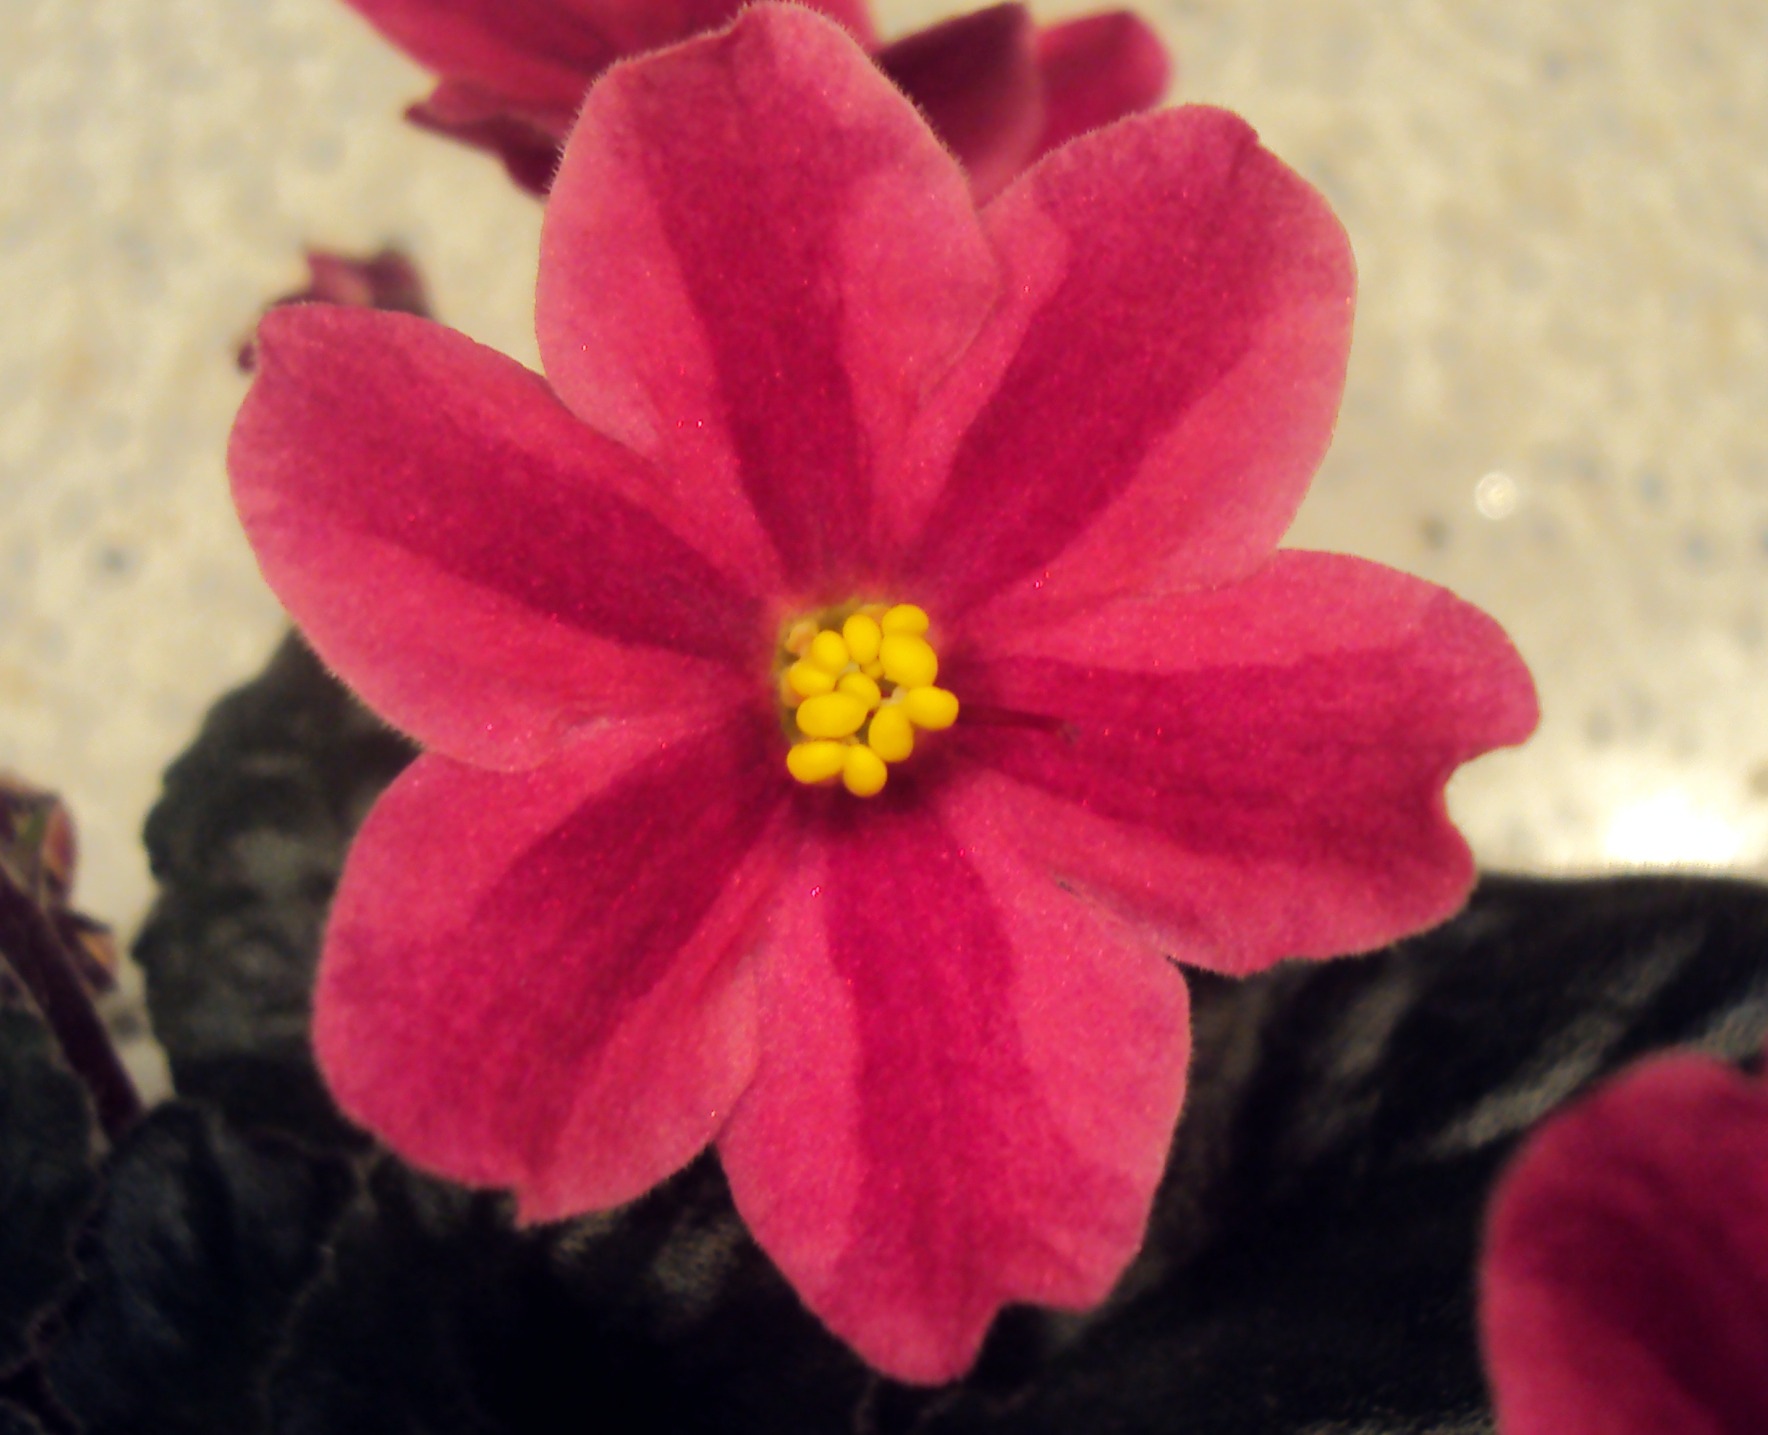 Six Petal Flowers On Chimera African Violets | chimeraav.com Red Violet Flowers